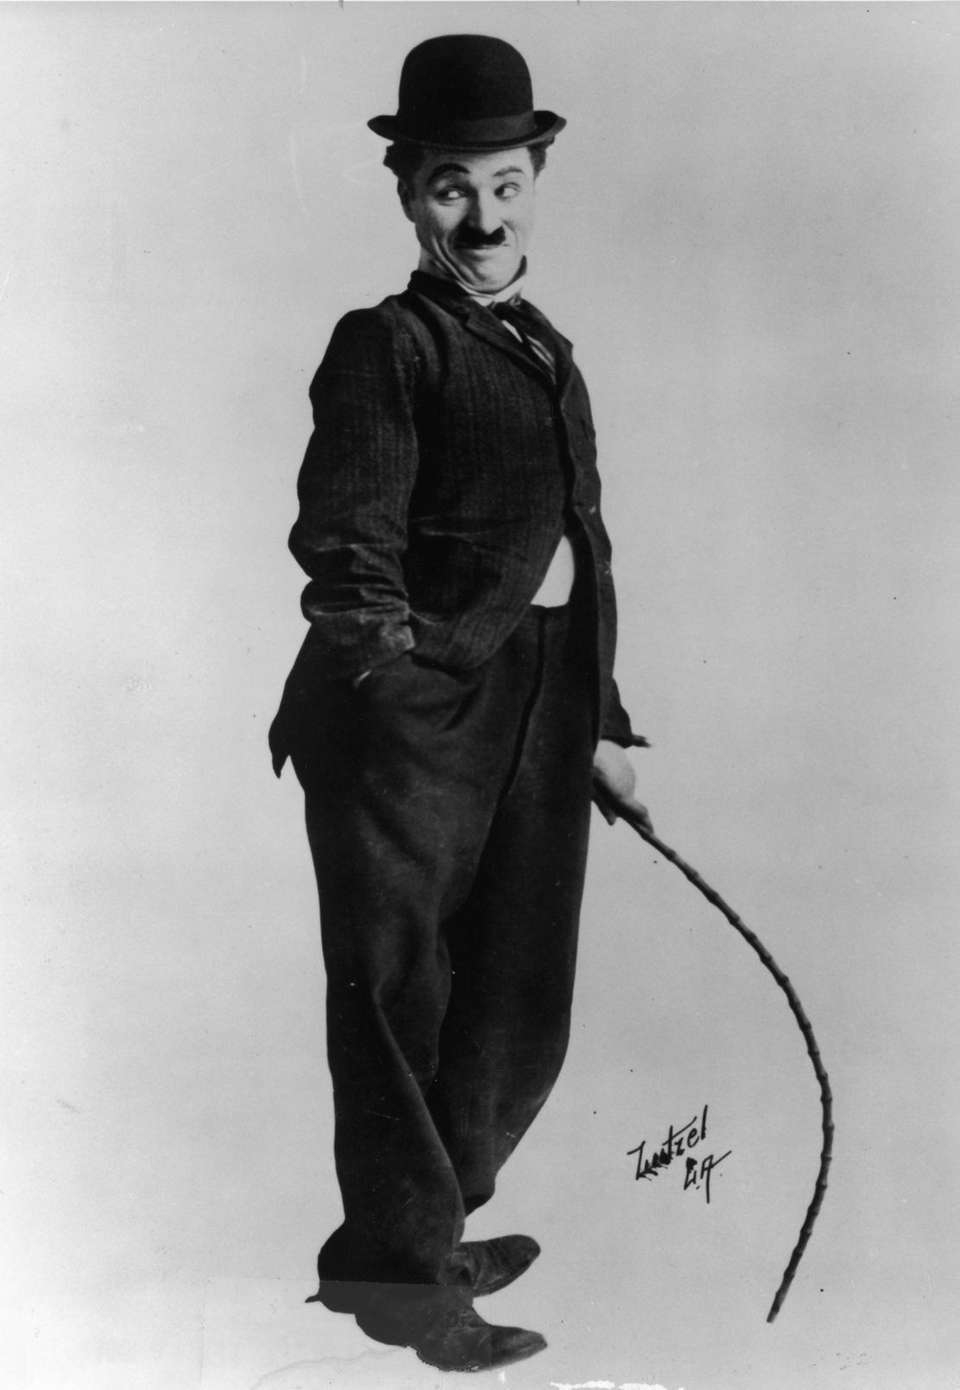 Iconic actor and filmmaker Charles Chaplin, whose career